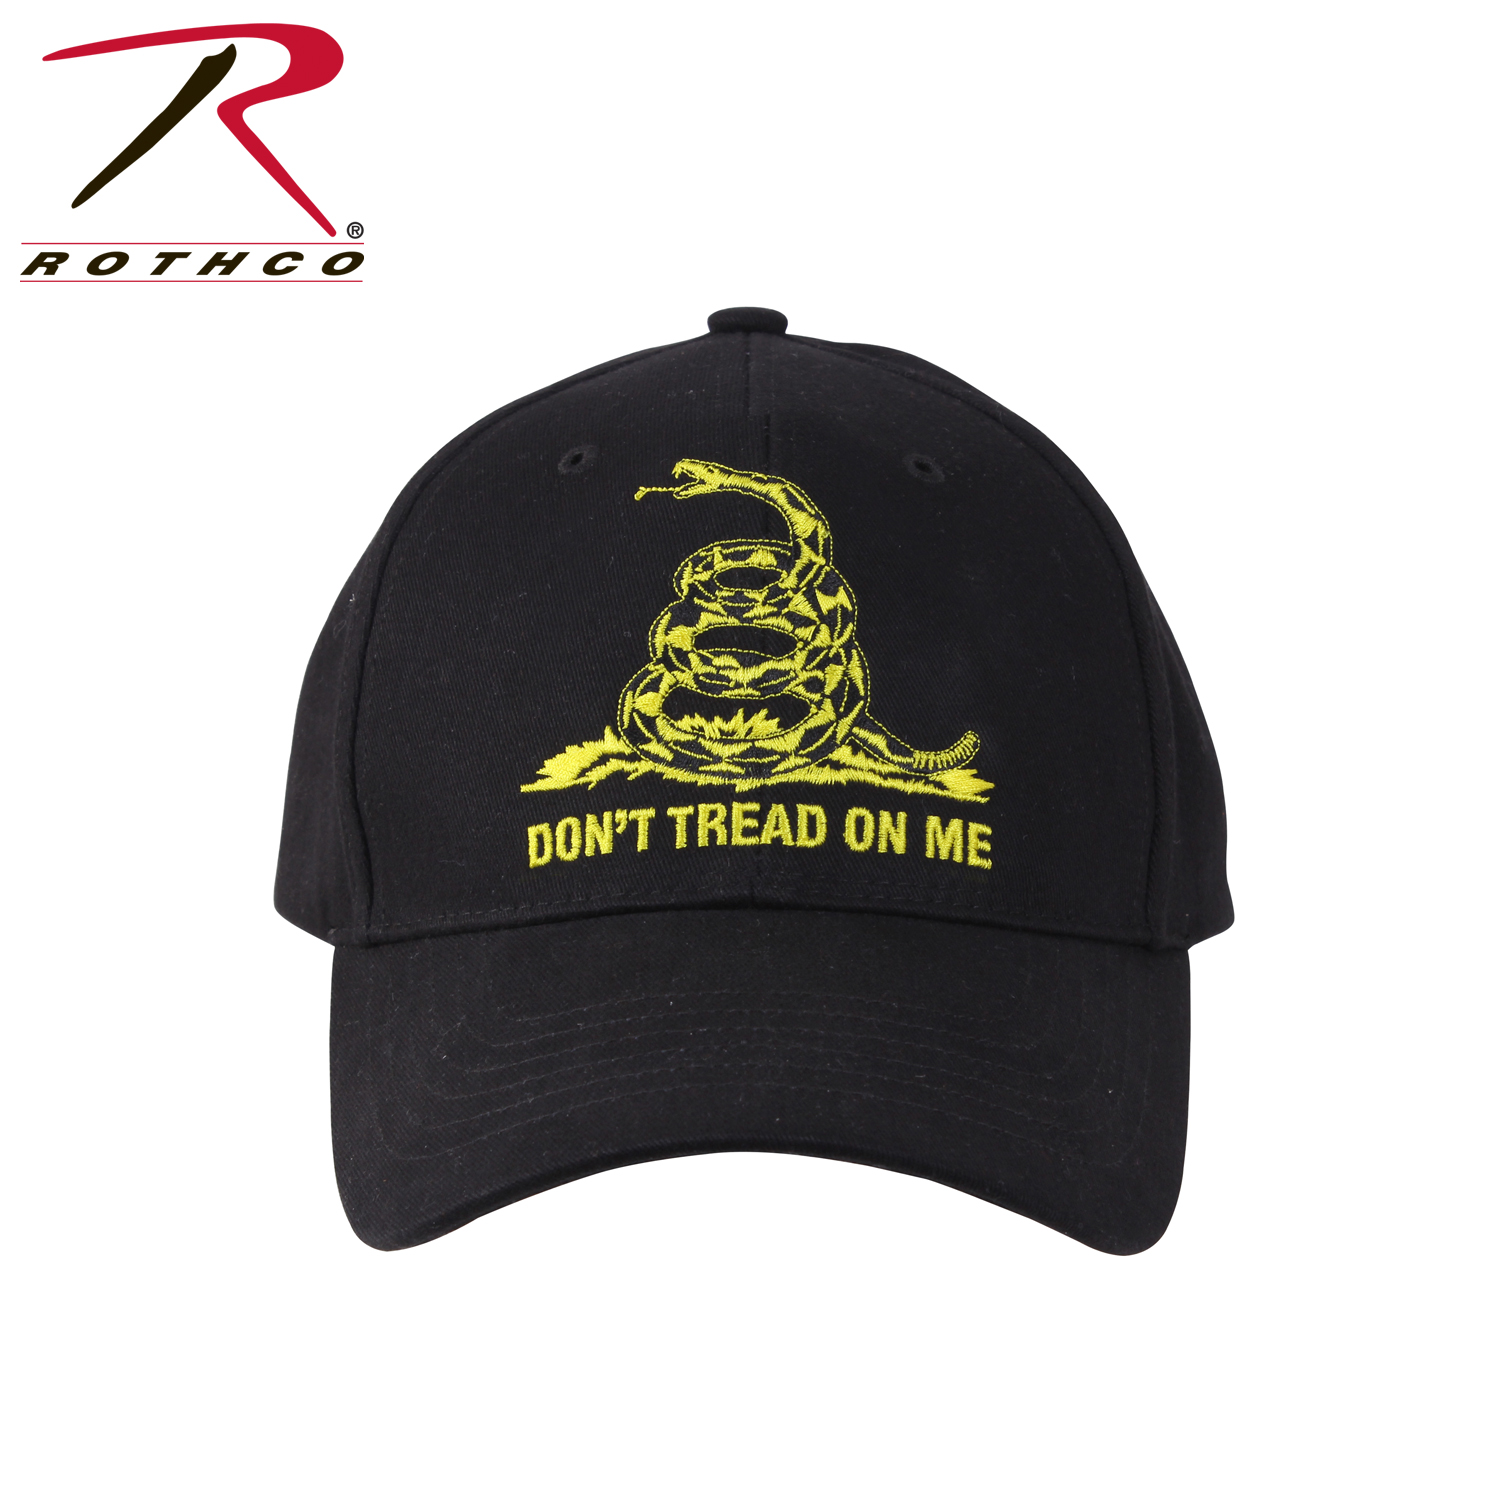 bb5638ddf32 Rothco Don t Tread On Me Low Profile Cap